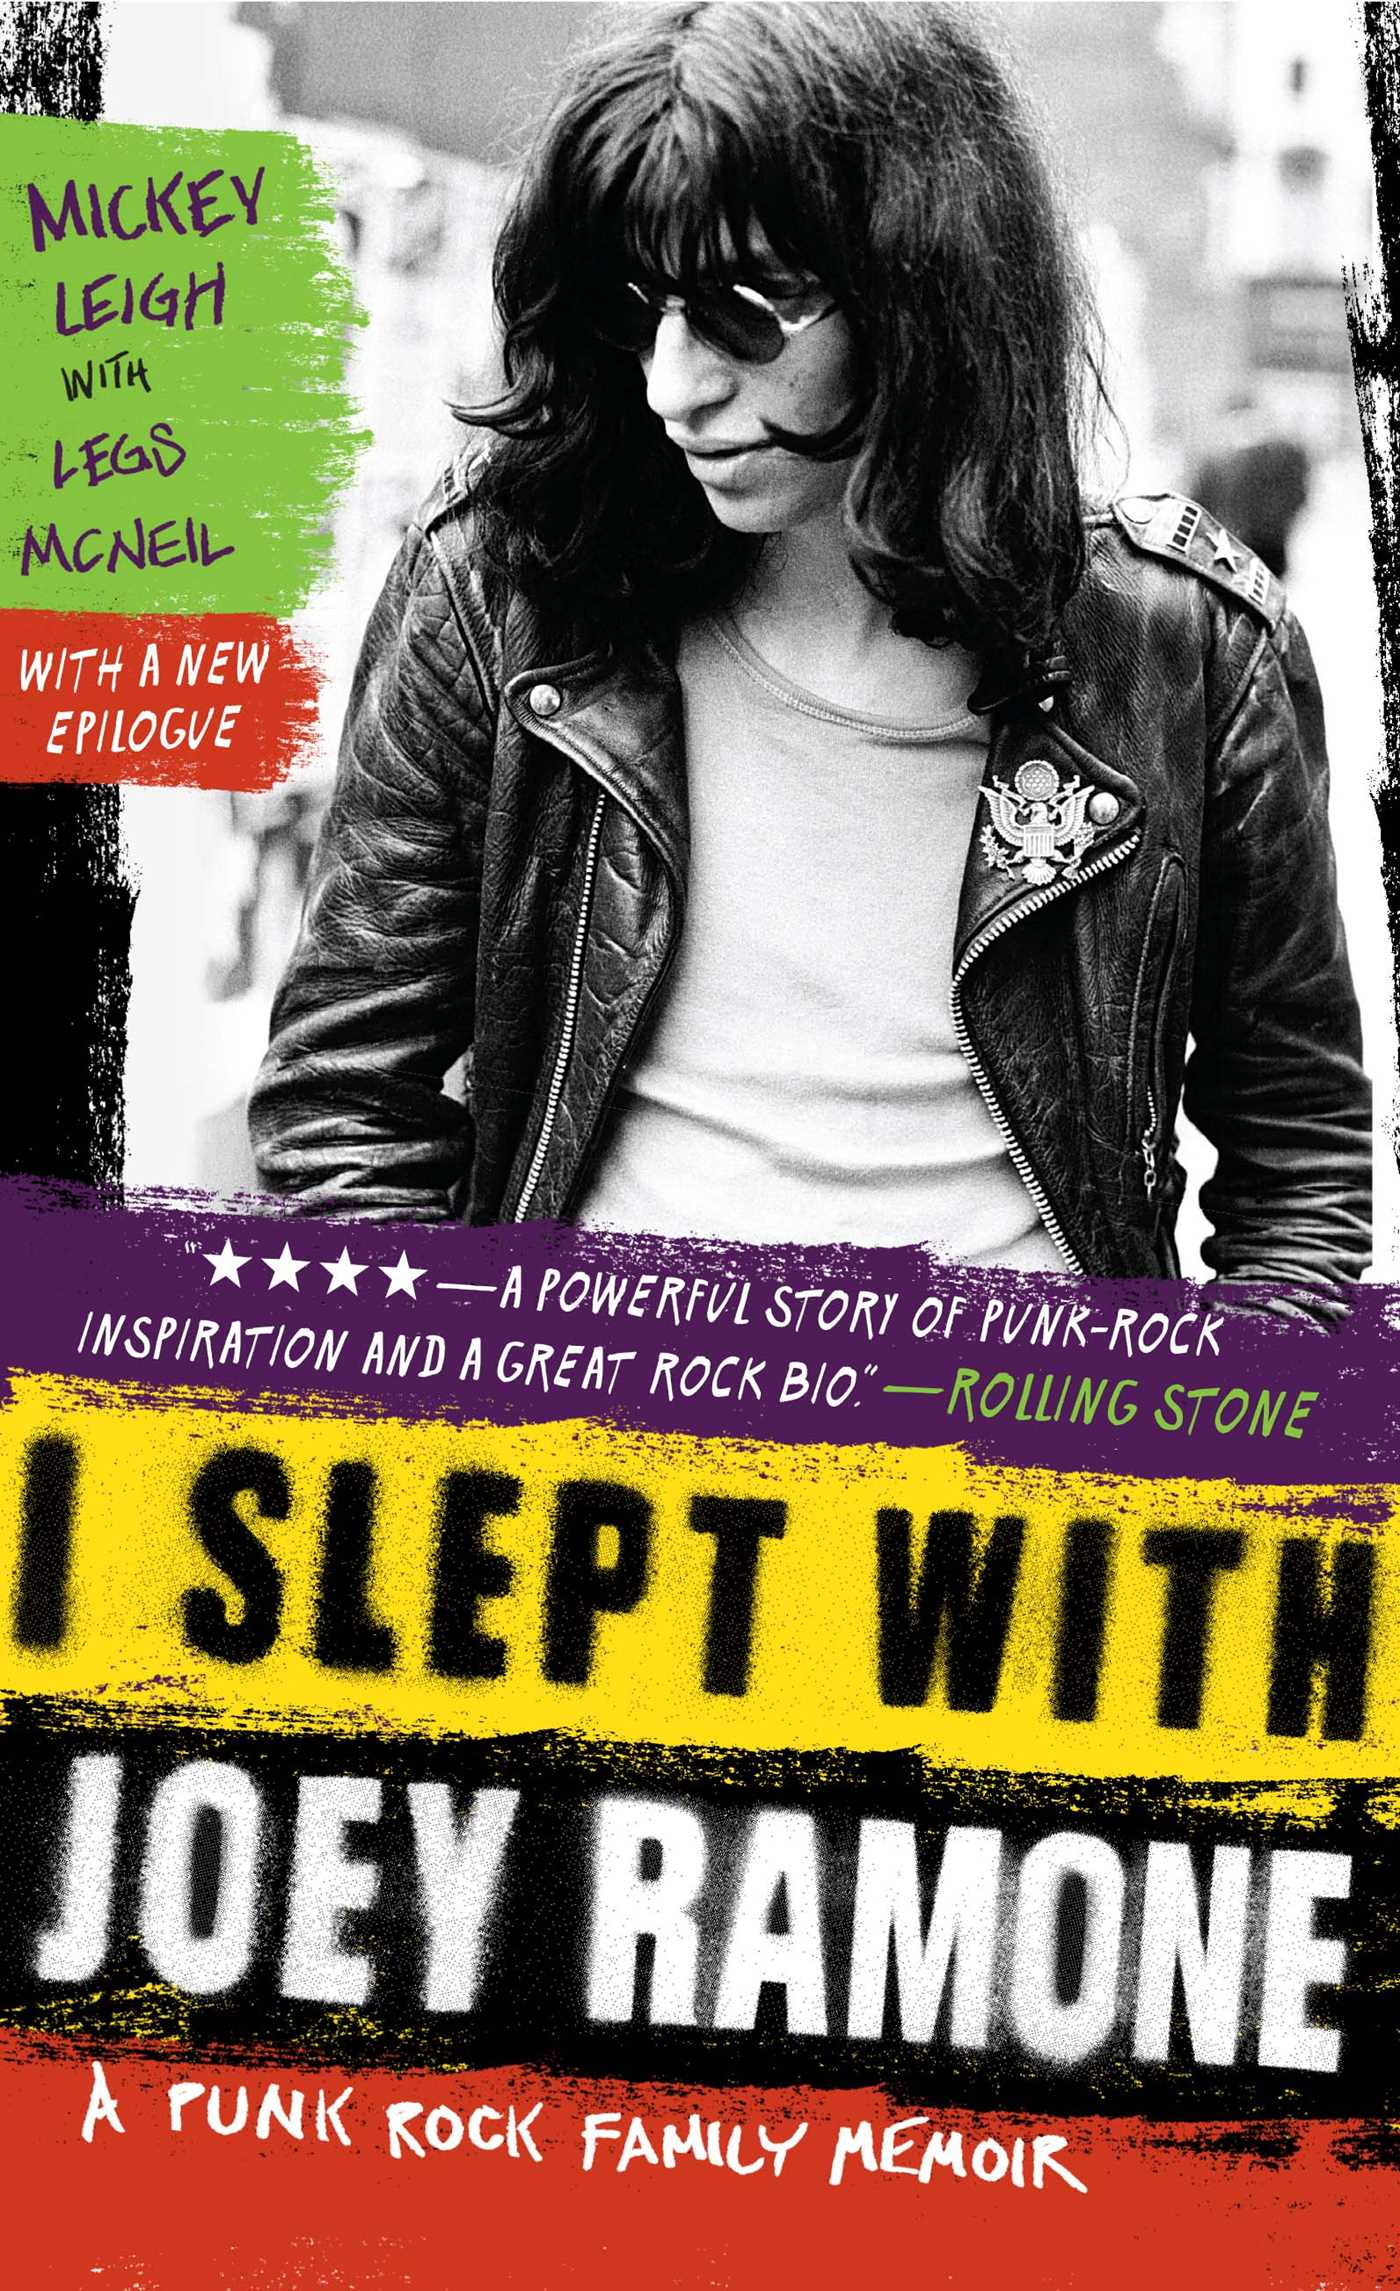 I slept with joey ramone 9781439159750 hr